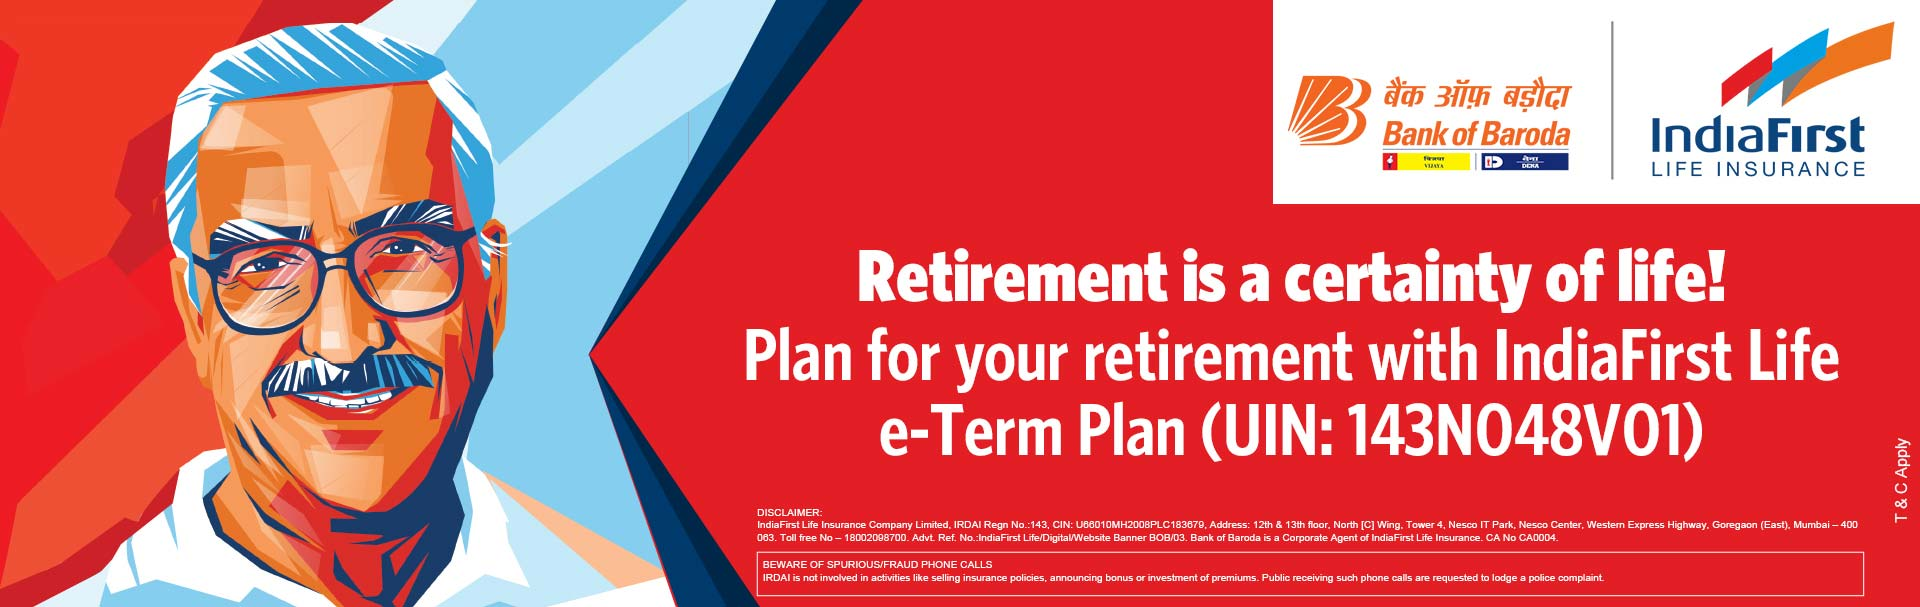 IndiaFirst Life Insurance Company Limited Retirement